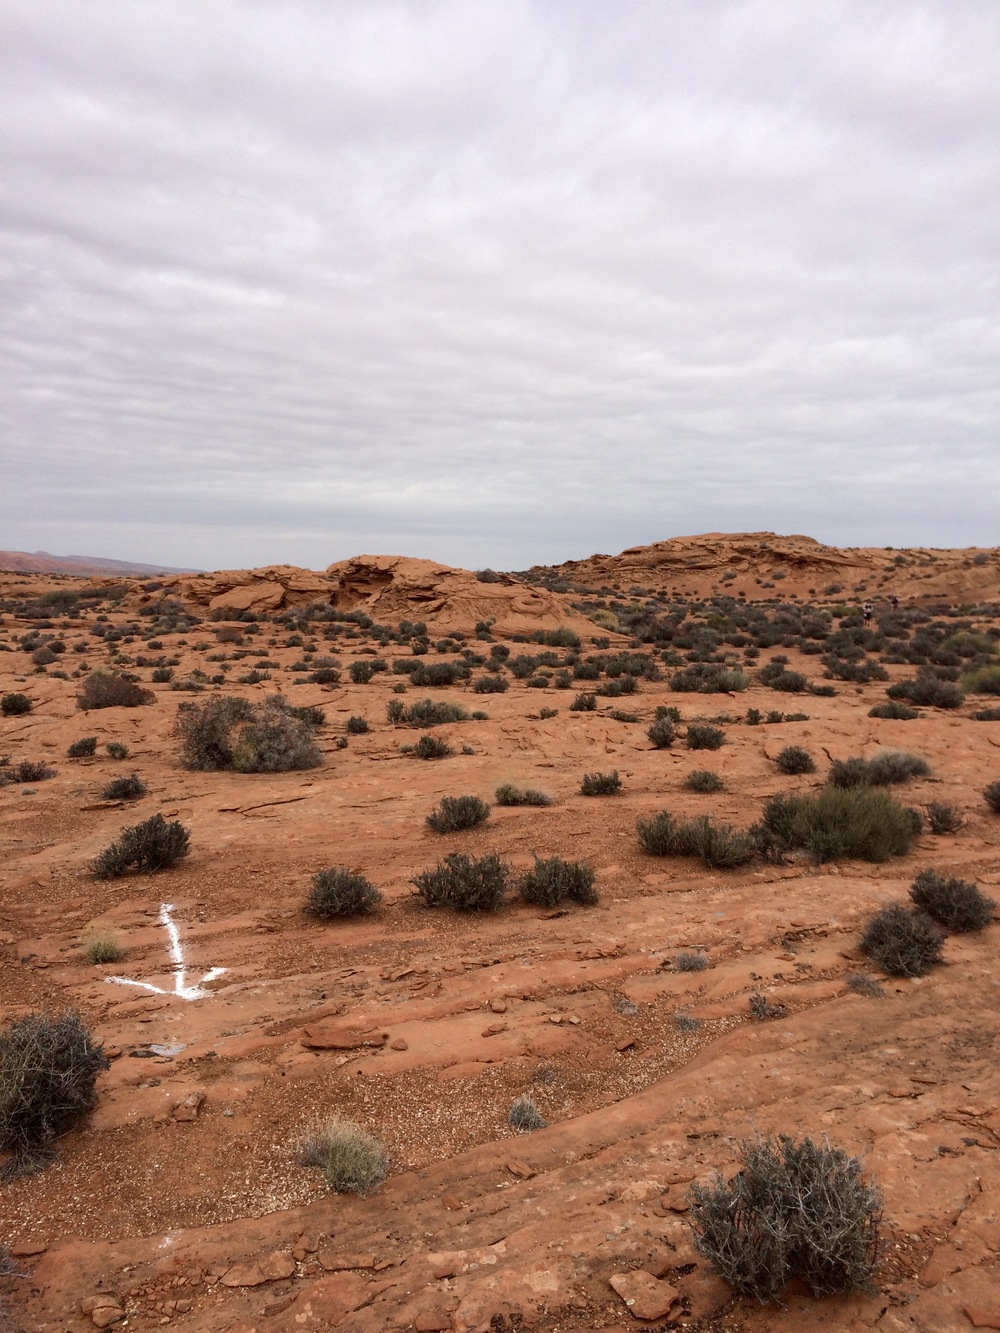 desert traverse (arrow made with flour, not spray paint).  photo by K. Strong.